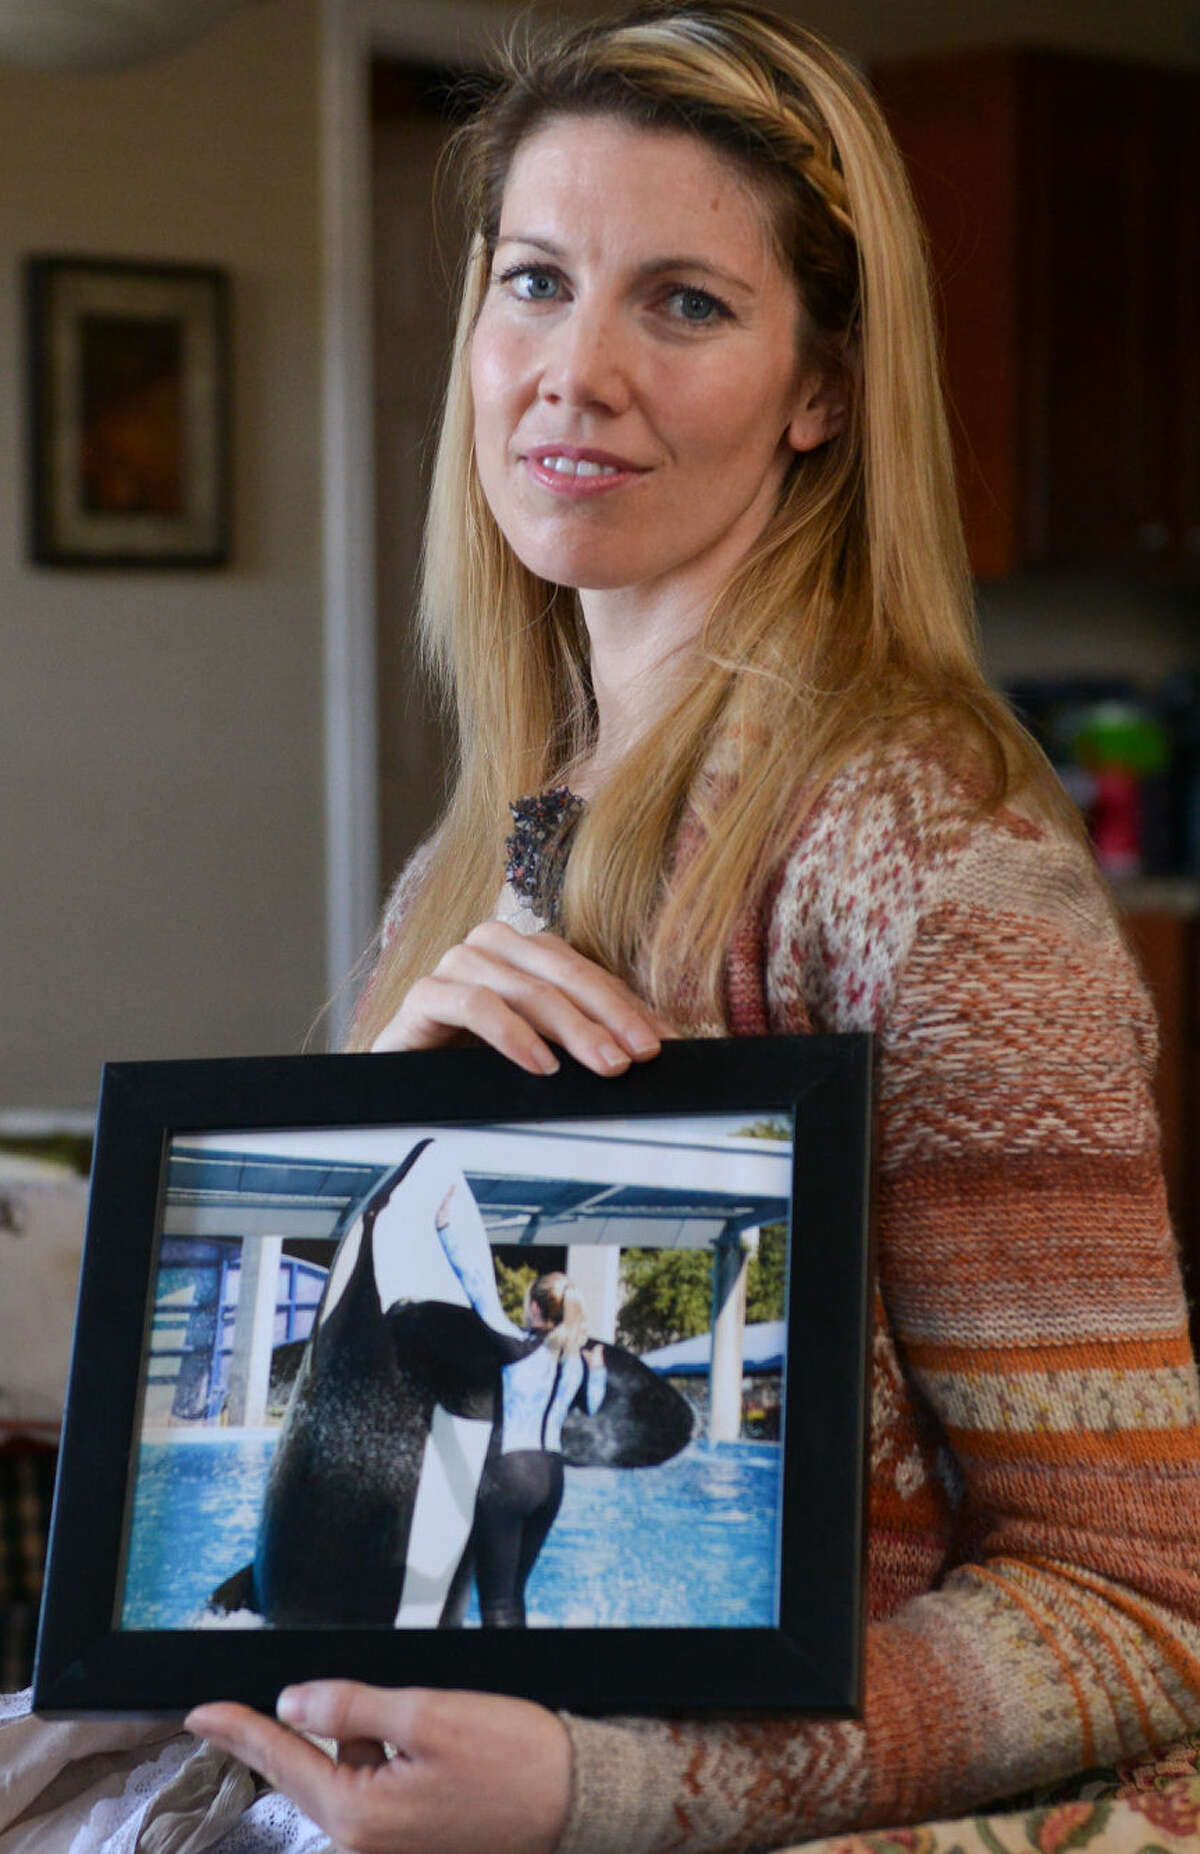 Bridgette Pirtle, who was employed at SeaWorld San Antonio from 2001 to '11, holds a picture of herself at work. She says